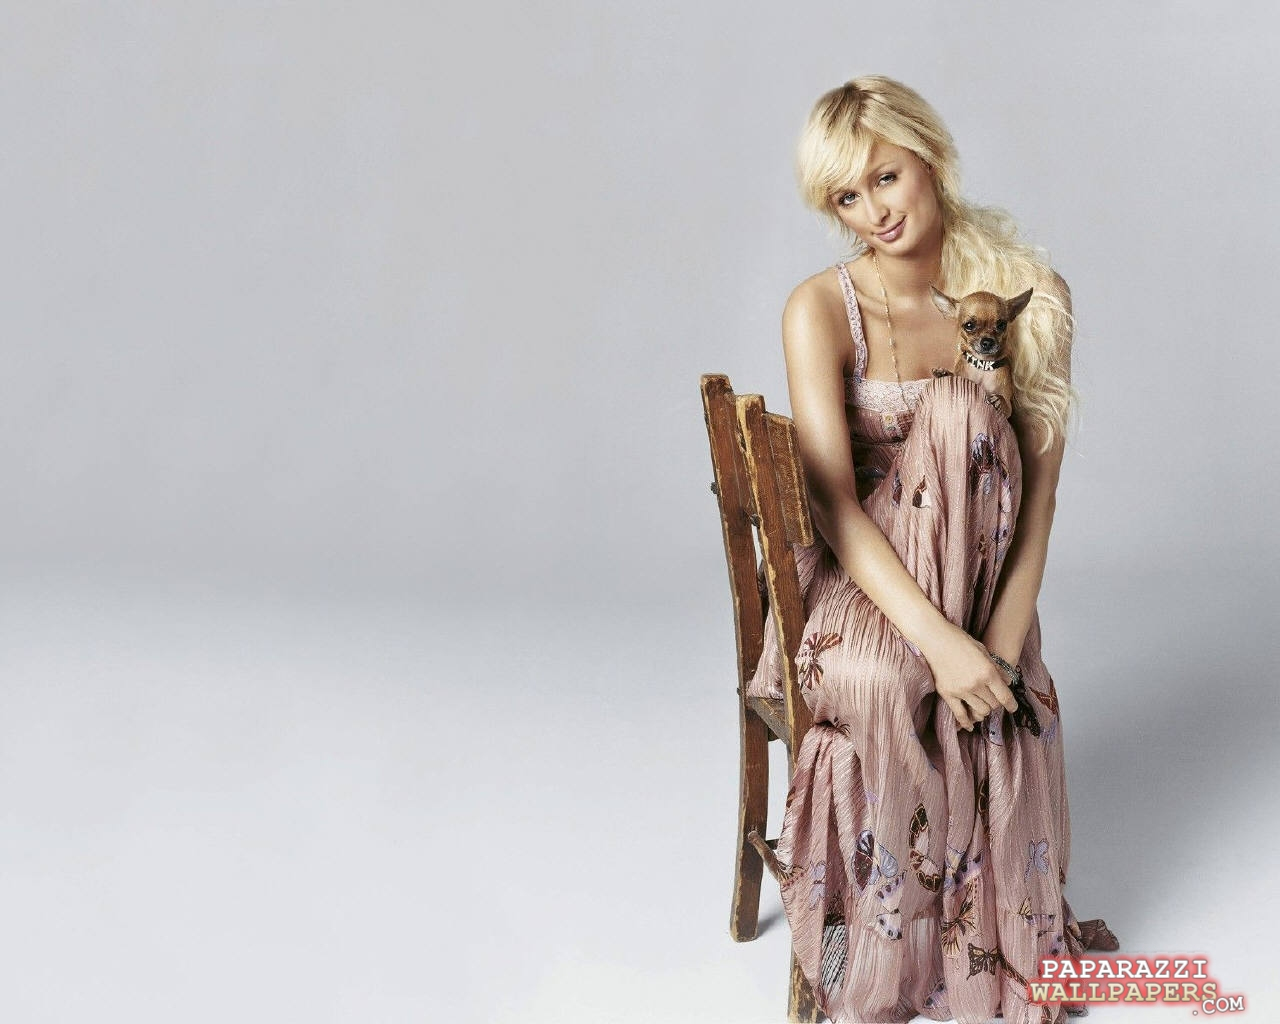 paris hilton wallpapers 082